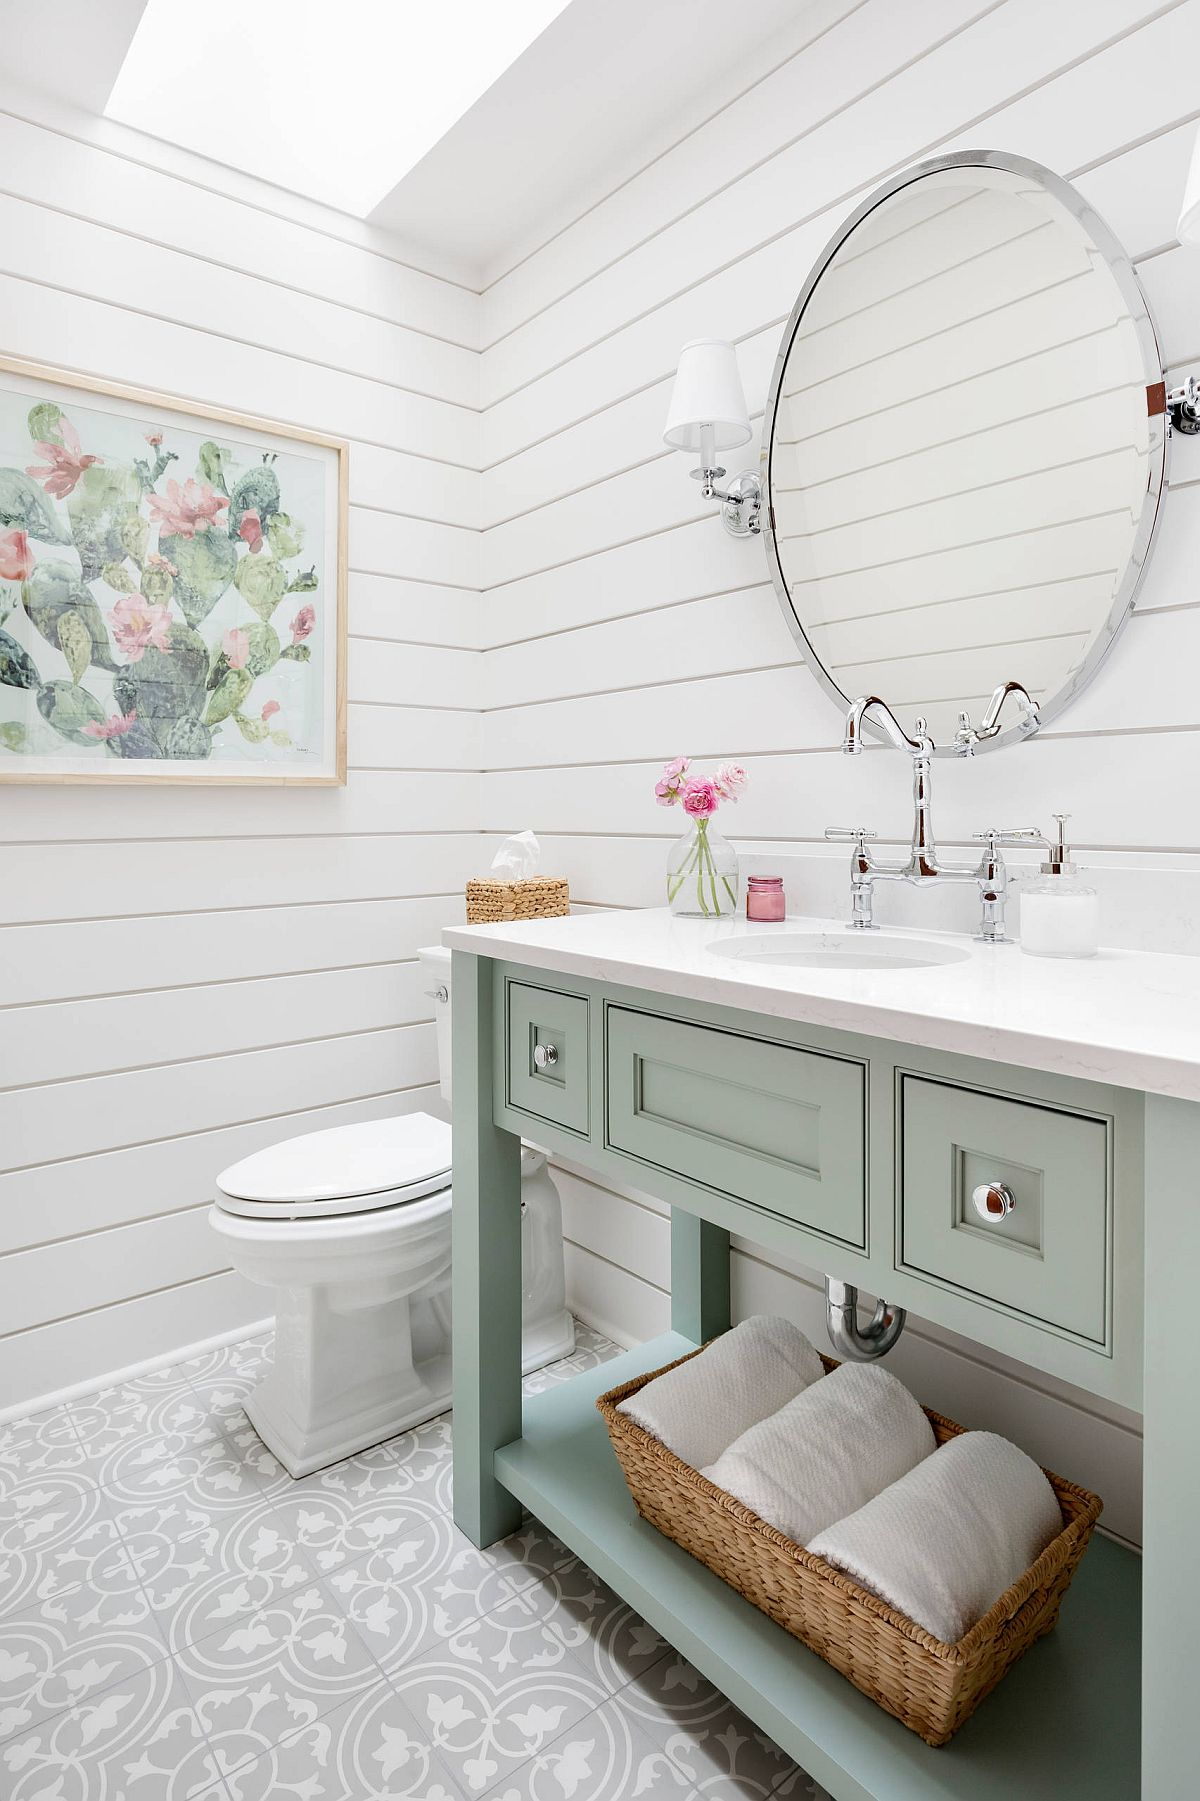 Gorgeous powder room in white with pastel green vanity and a skylight that brings in natural light